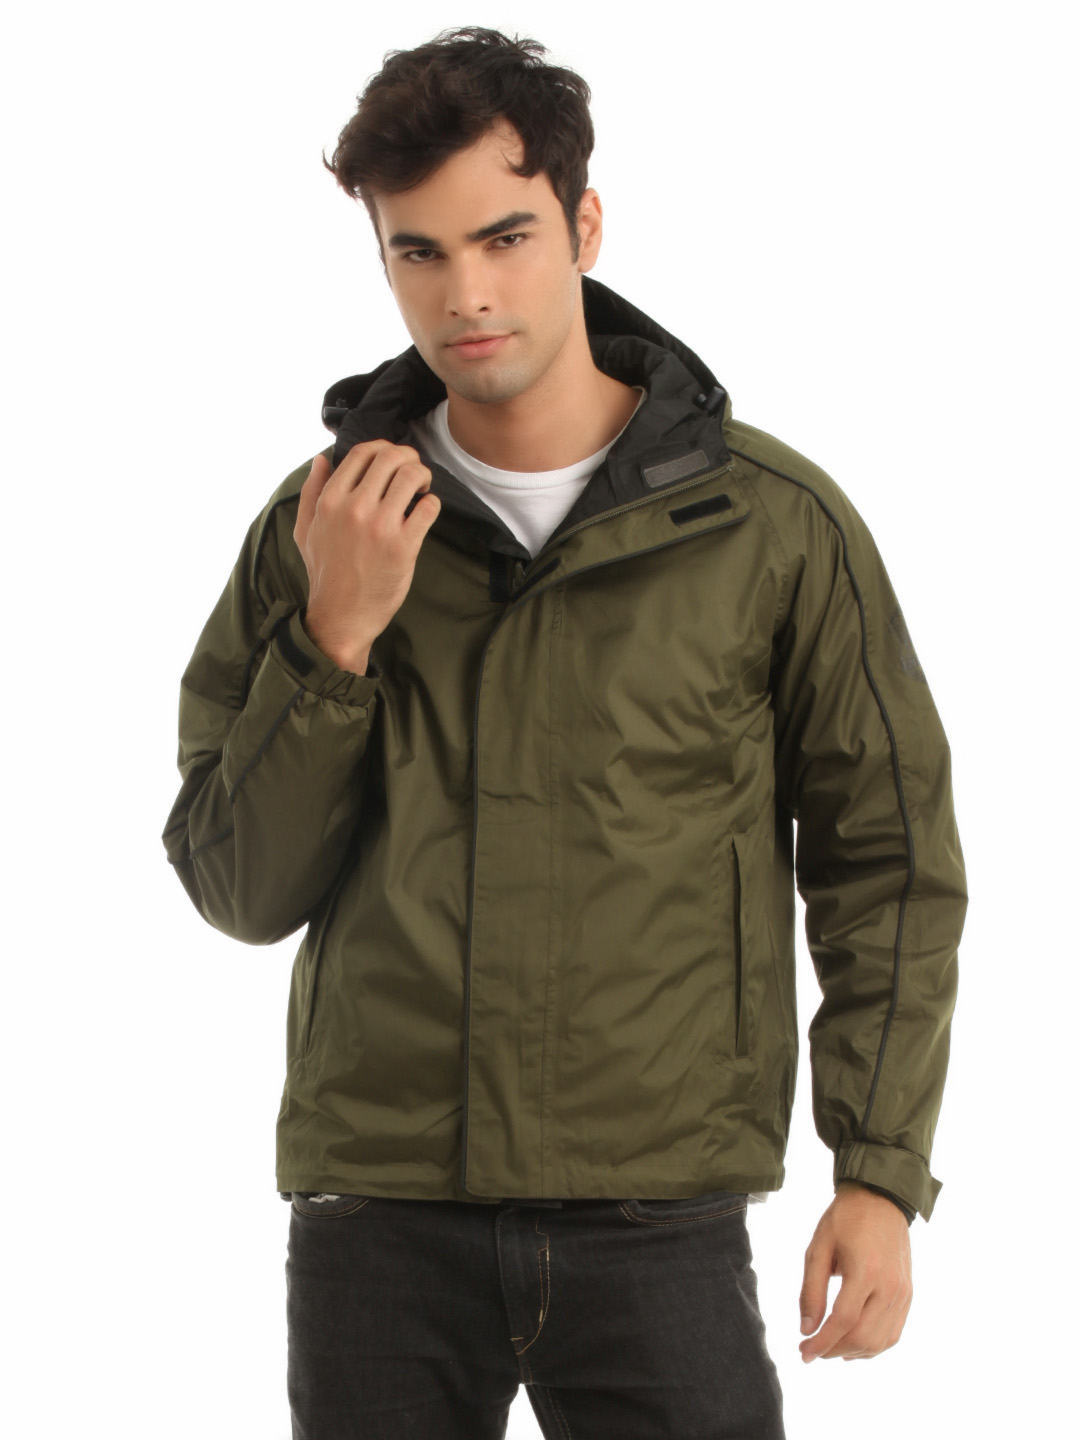 Just Natural Unisex Black and Olive Reversible Rain Jacket